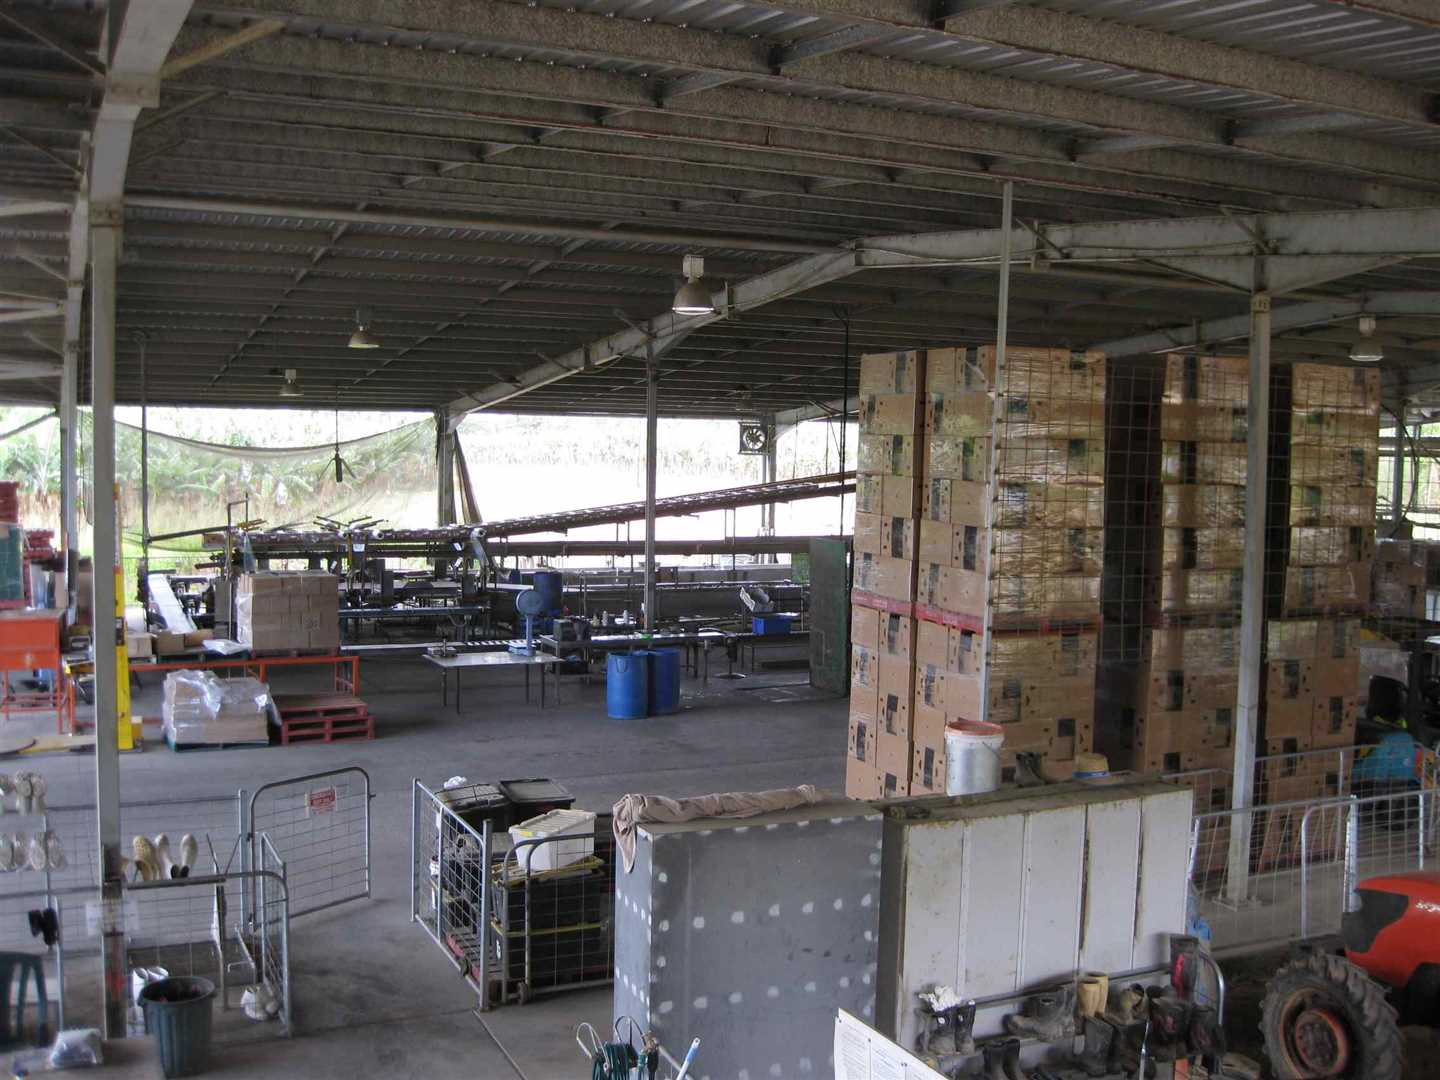 View of part of inside packing shed